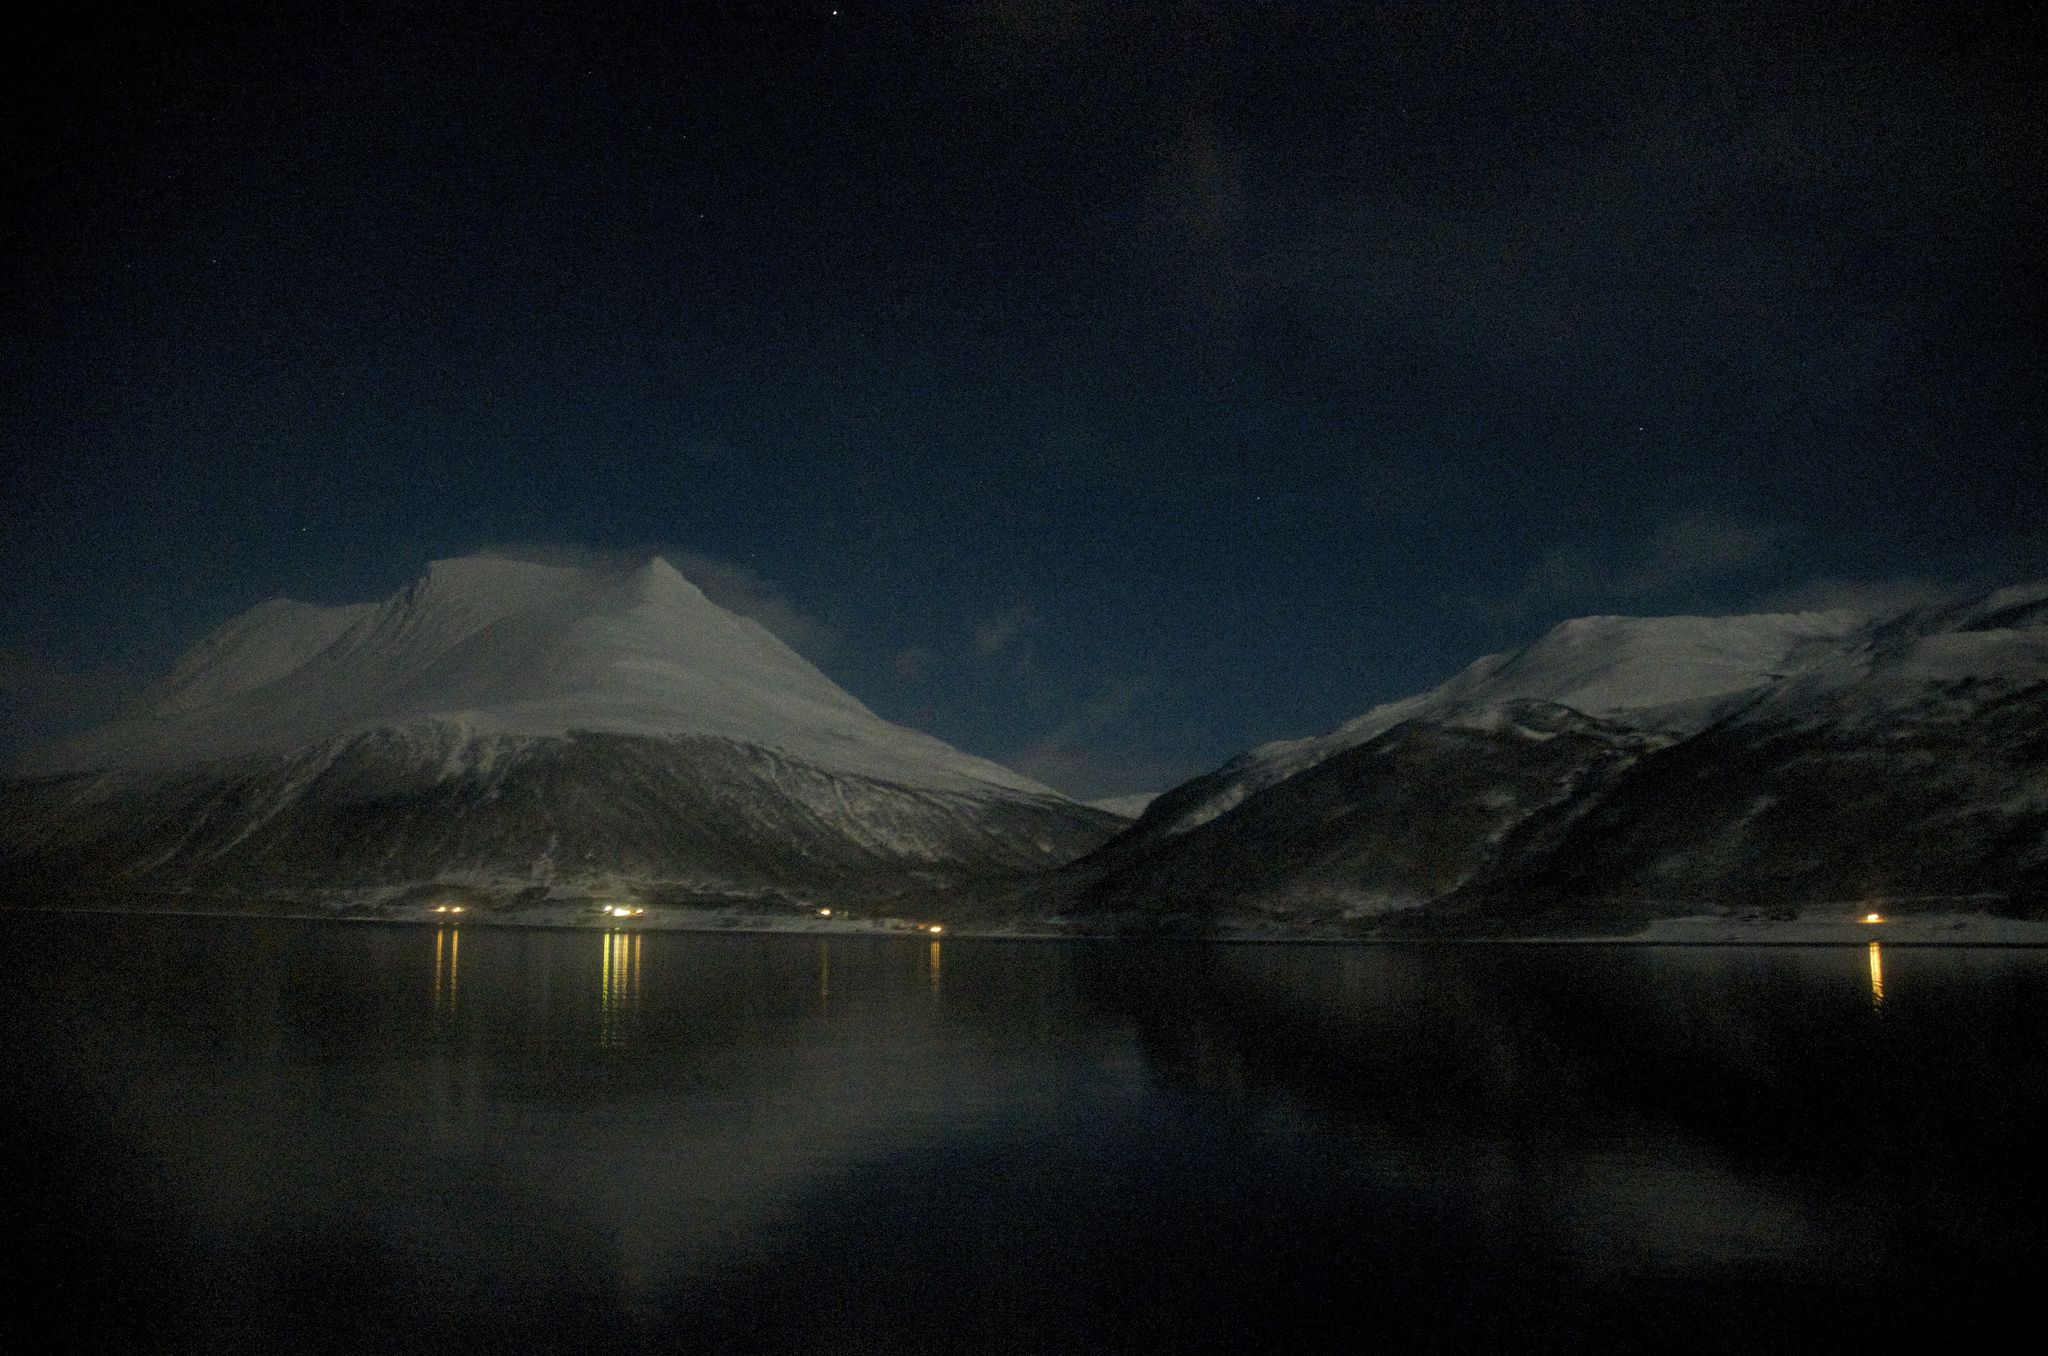 THE ARCTIC: A YEAR IN PICTURES. Night falls in Norway. © Mia Bennett